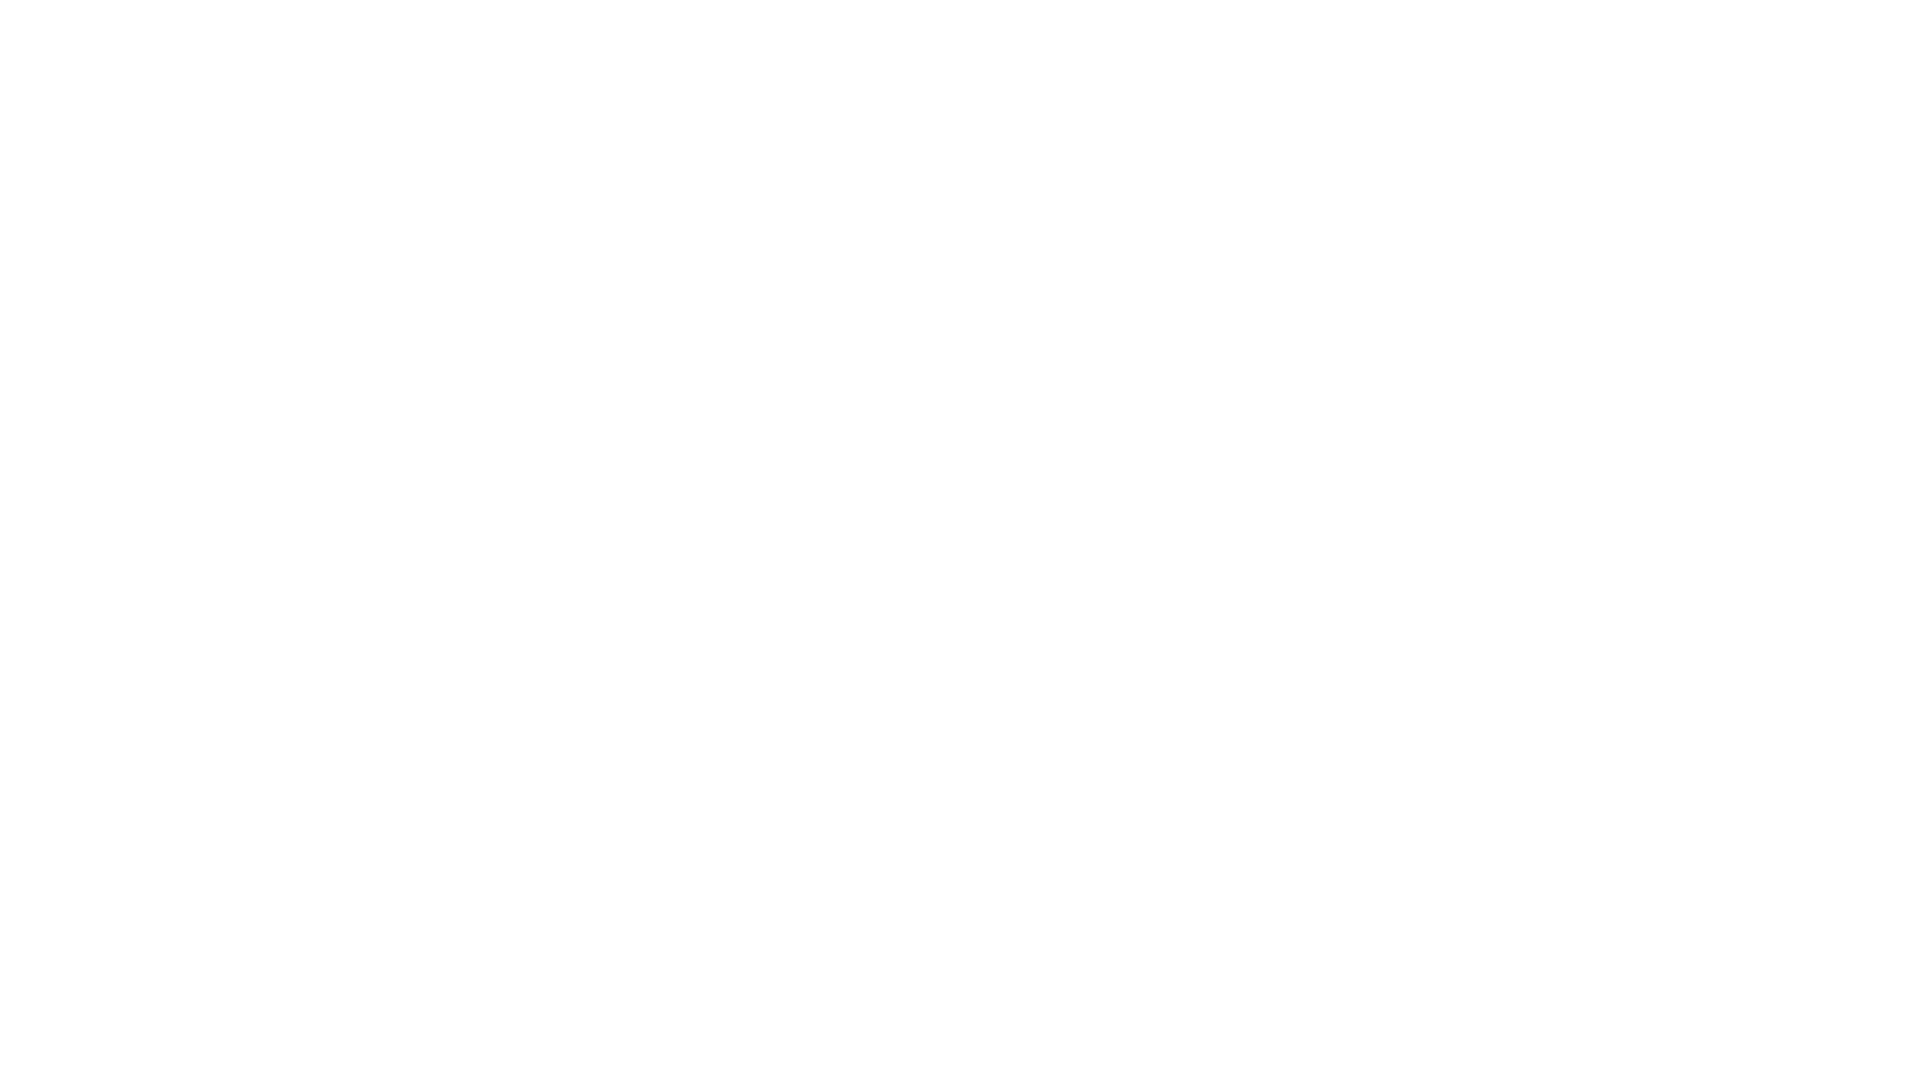 Capacity Central America & Andean 2018